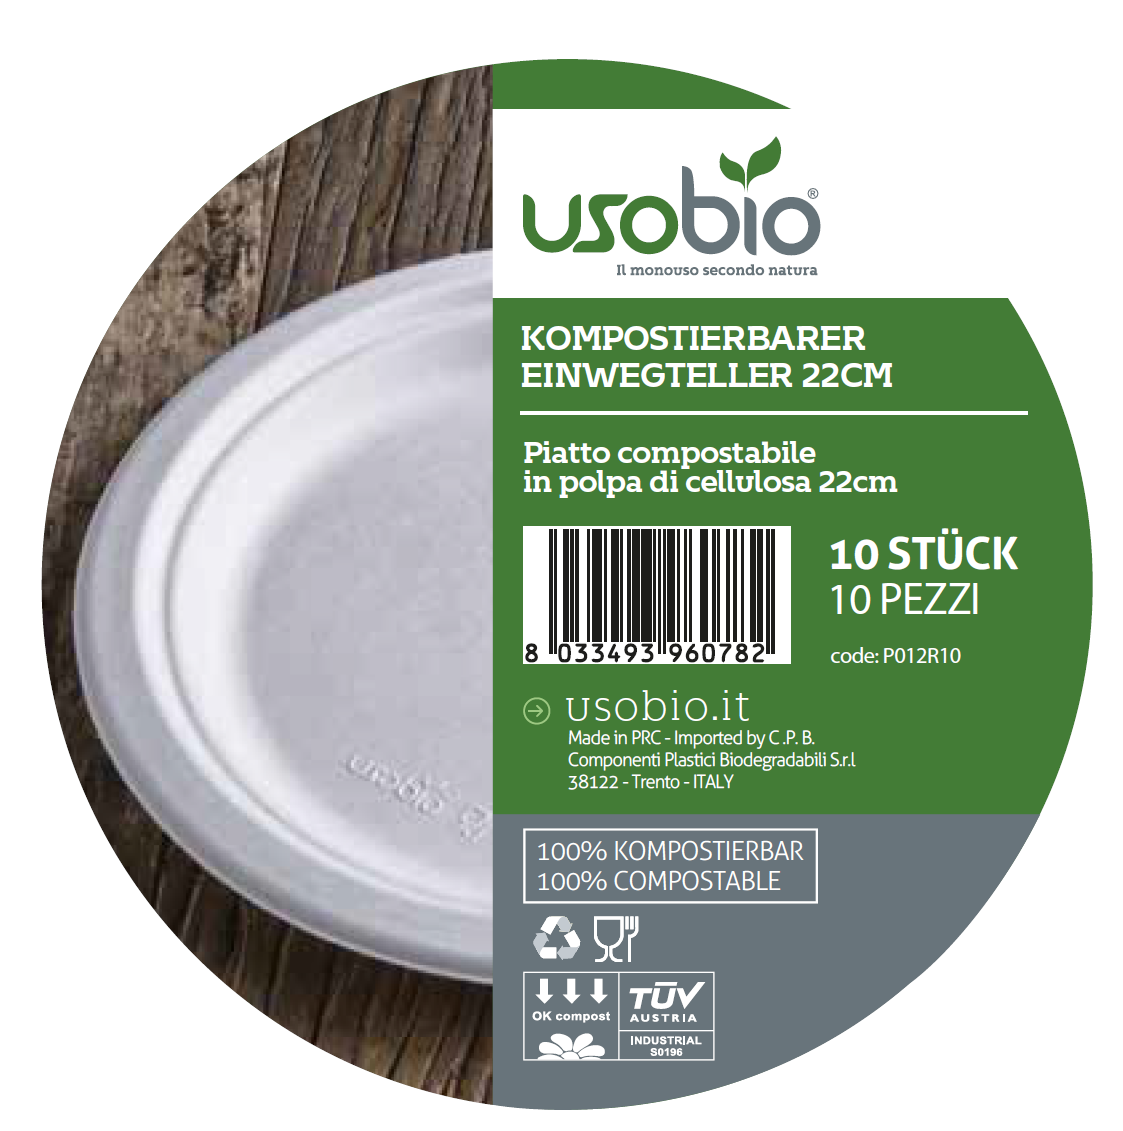 Usobio - Vaisselle jetable compostable